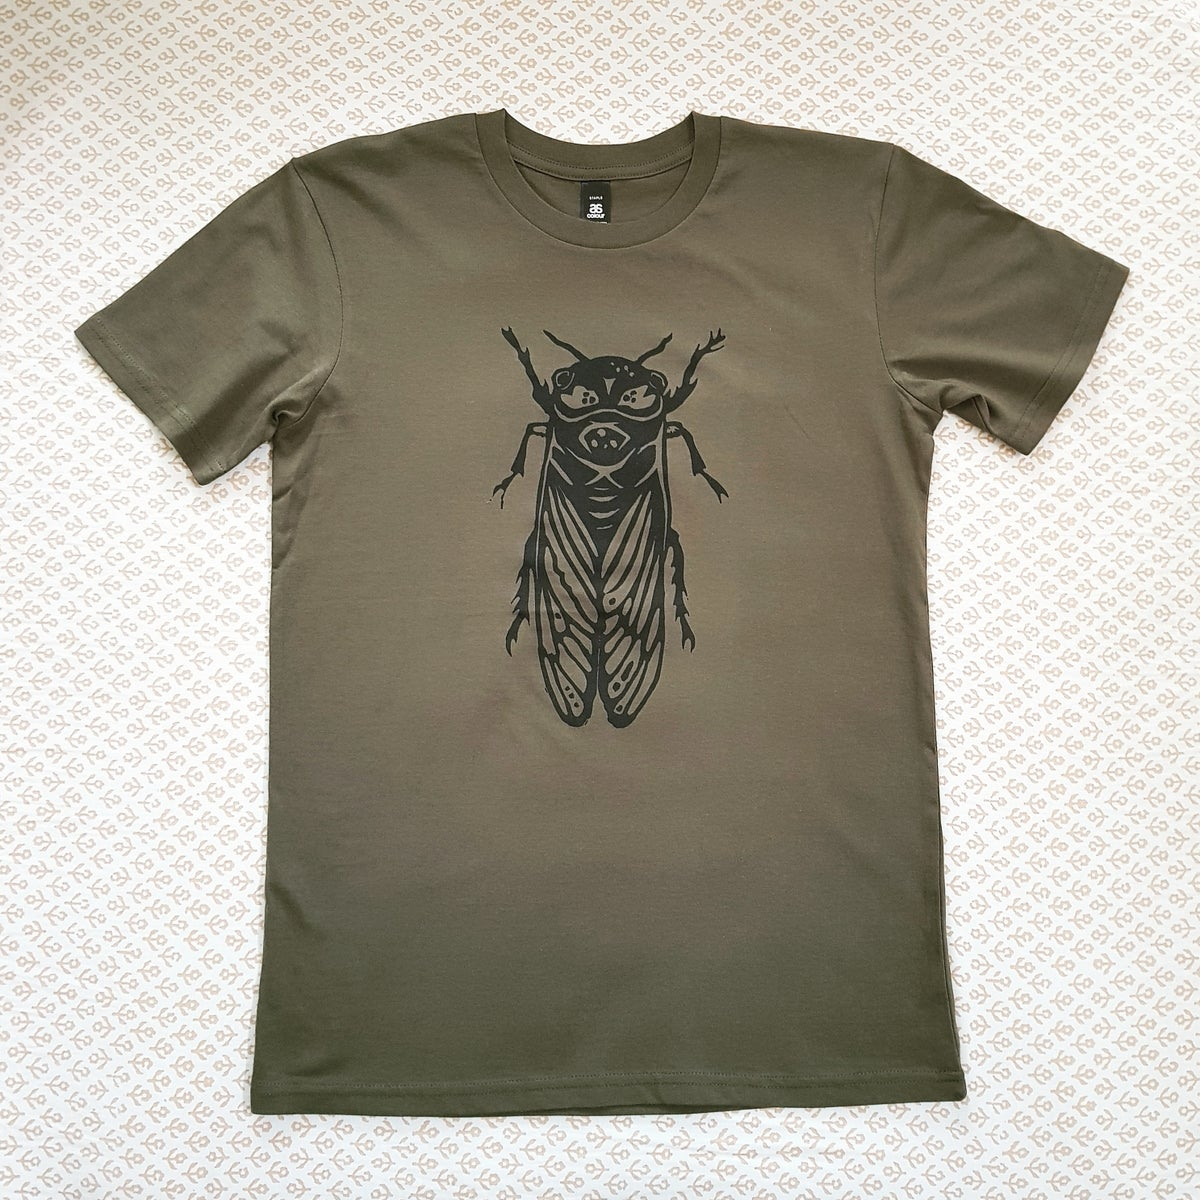 Image of Grown-Up T-Shirt - Cicada - Rust or Olive